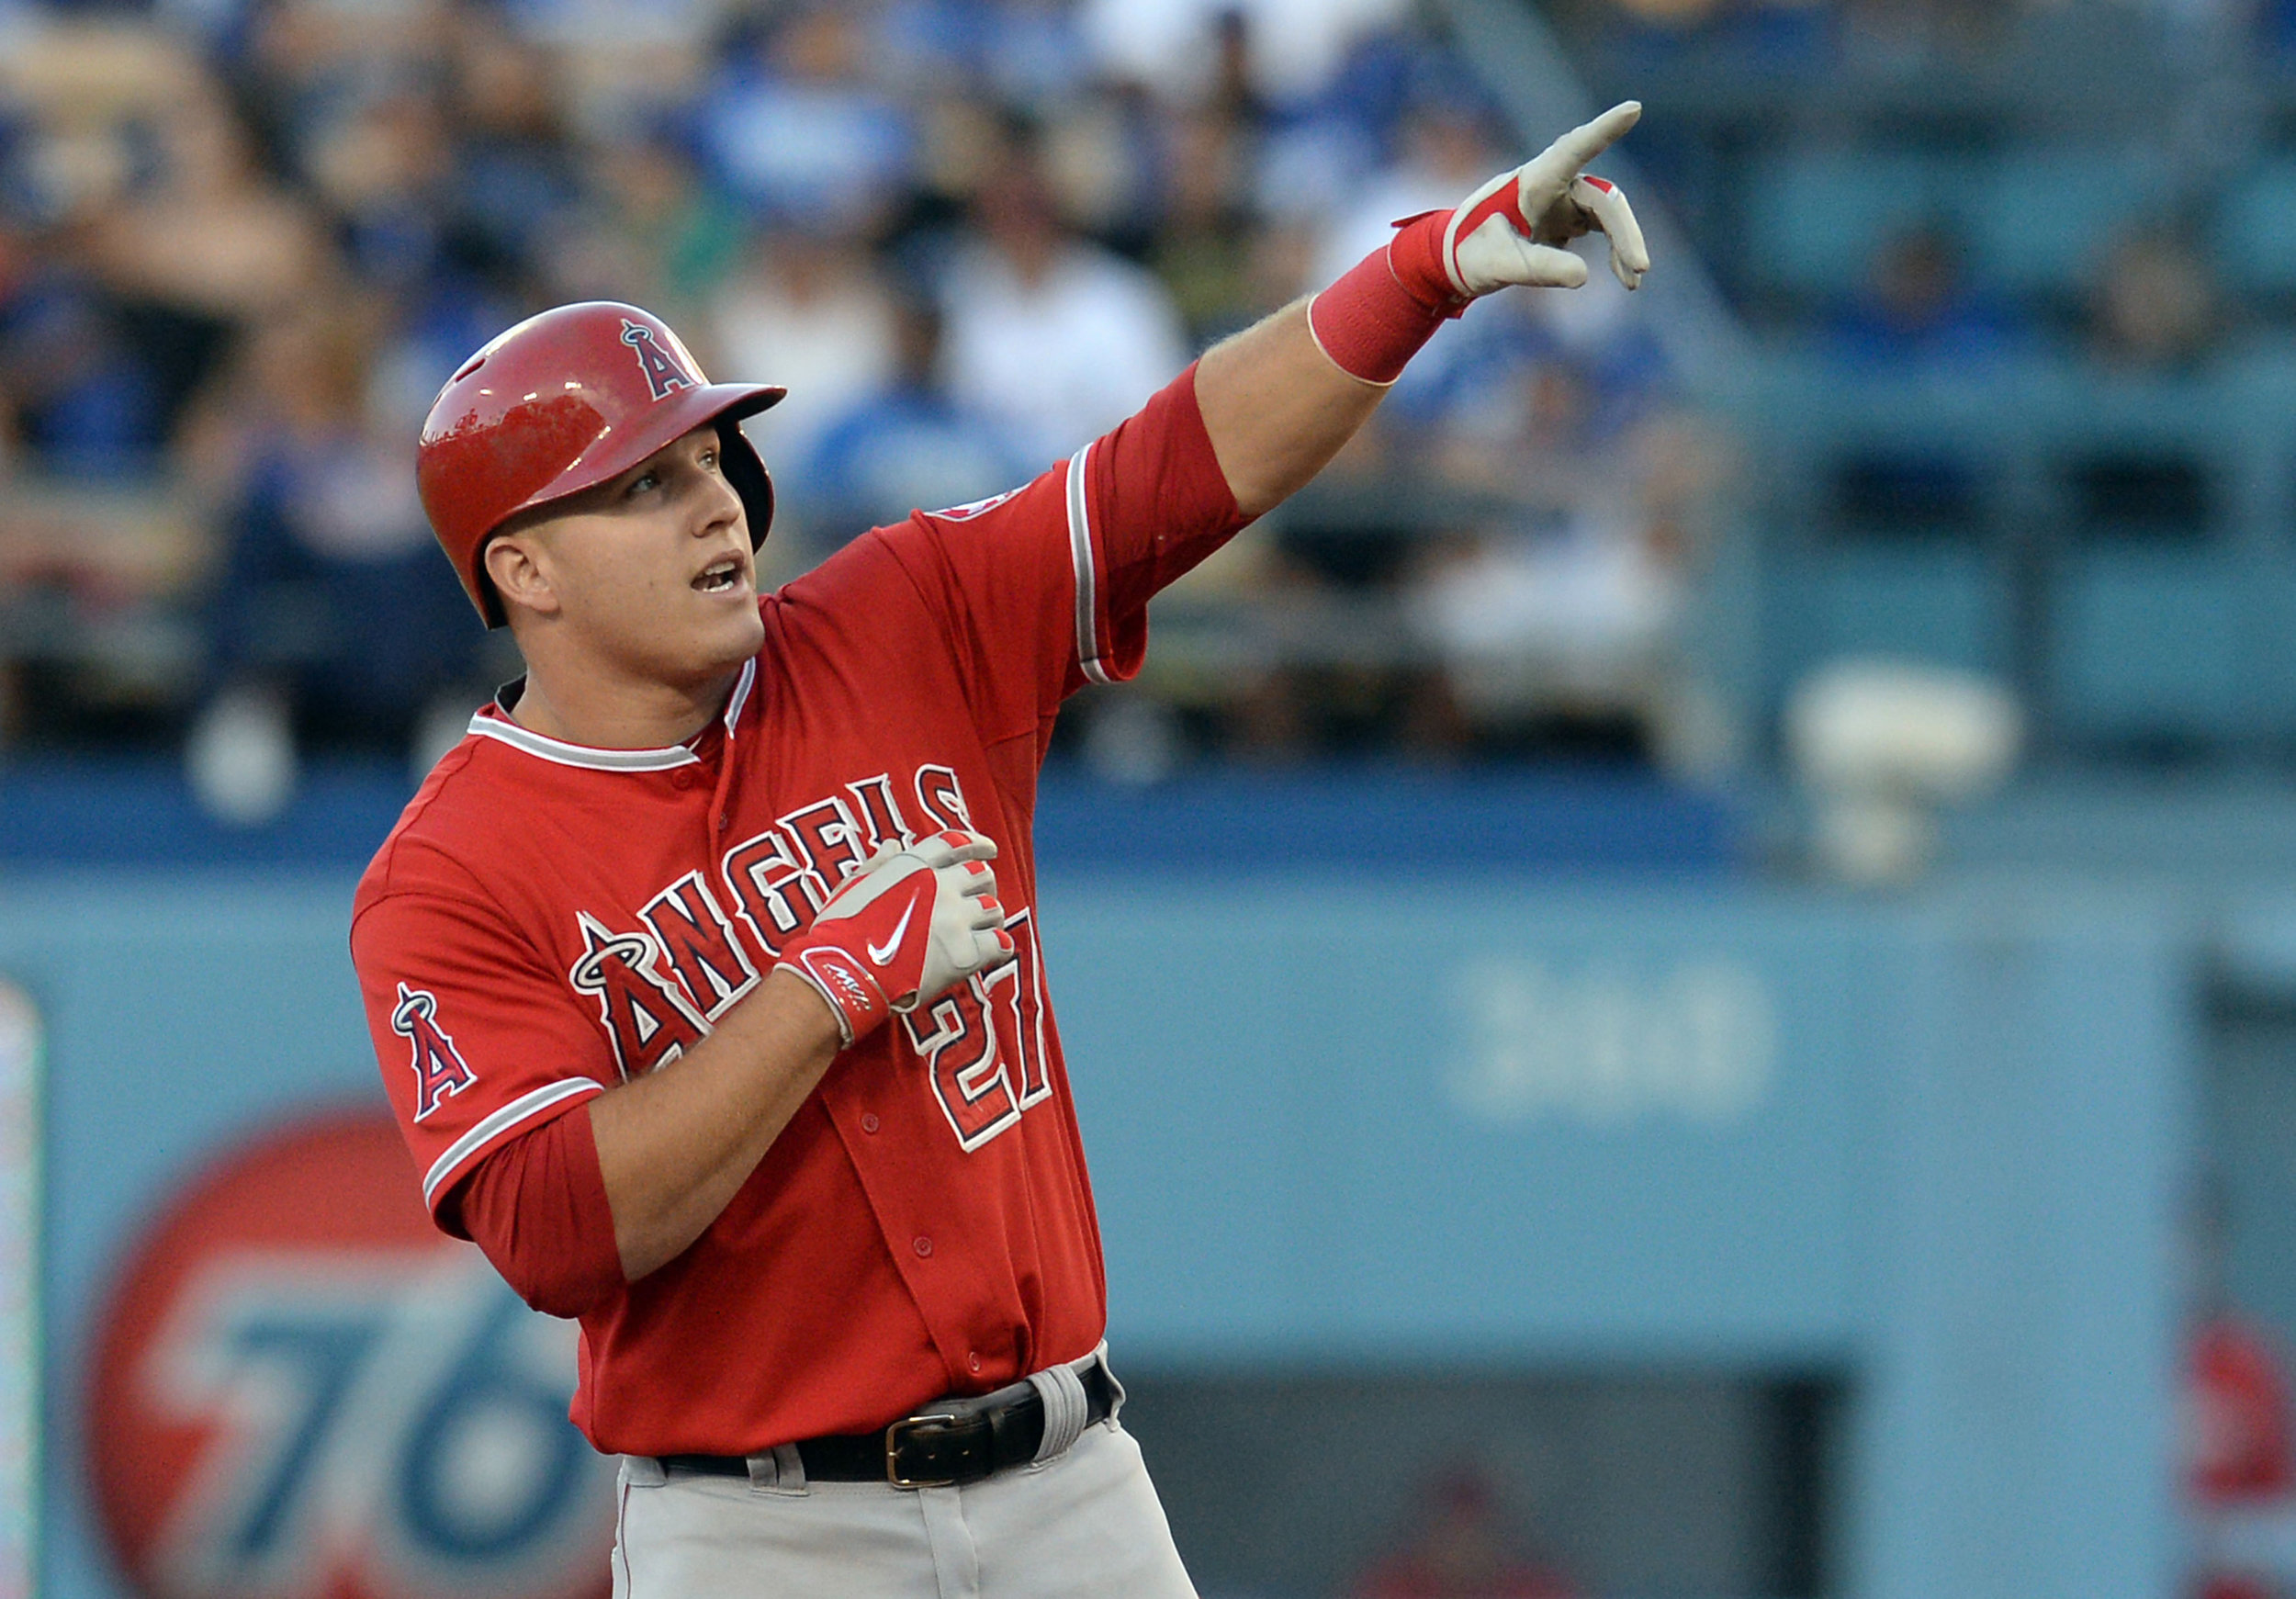 Mike Trout has been the Angels' biggest asset for years. (Via SI.com)